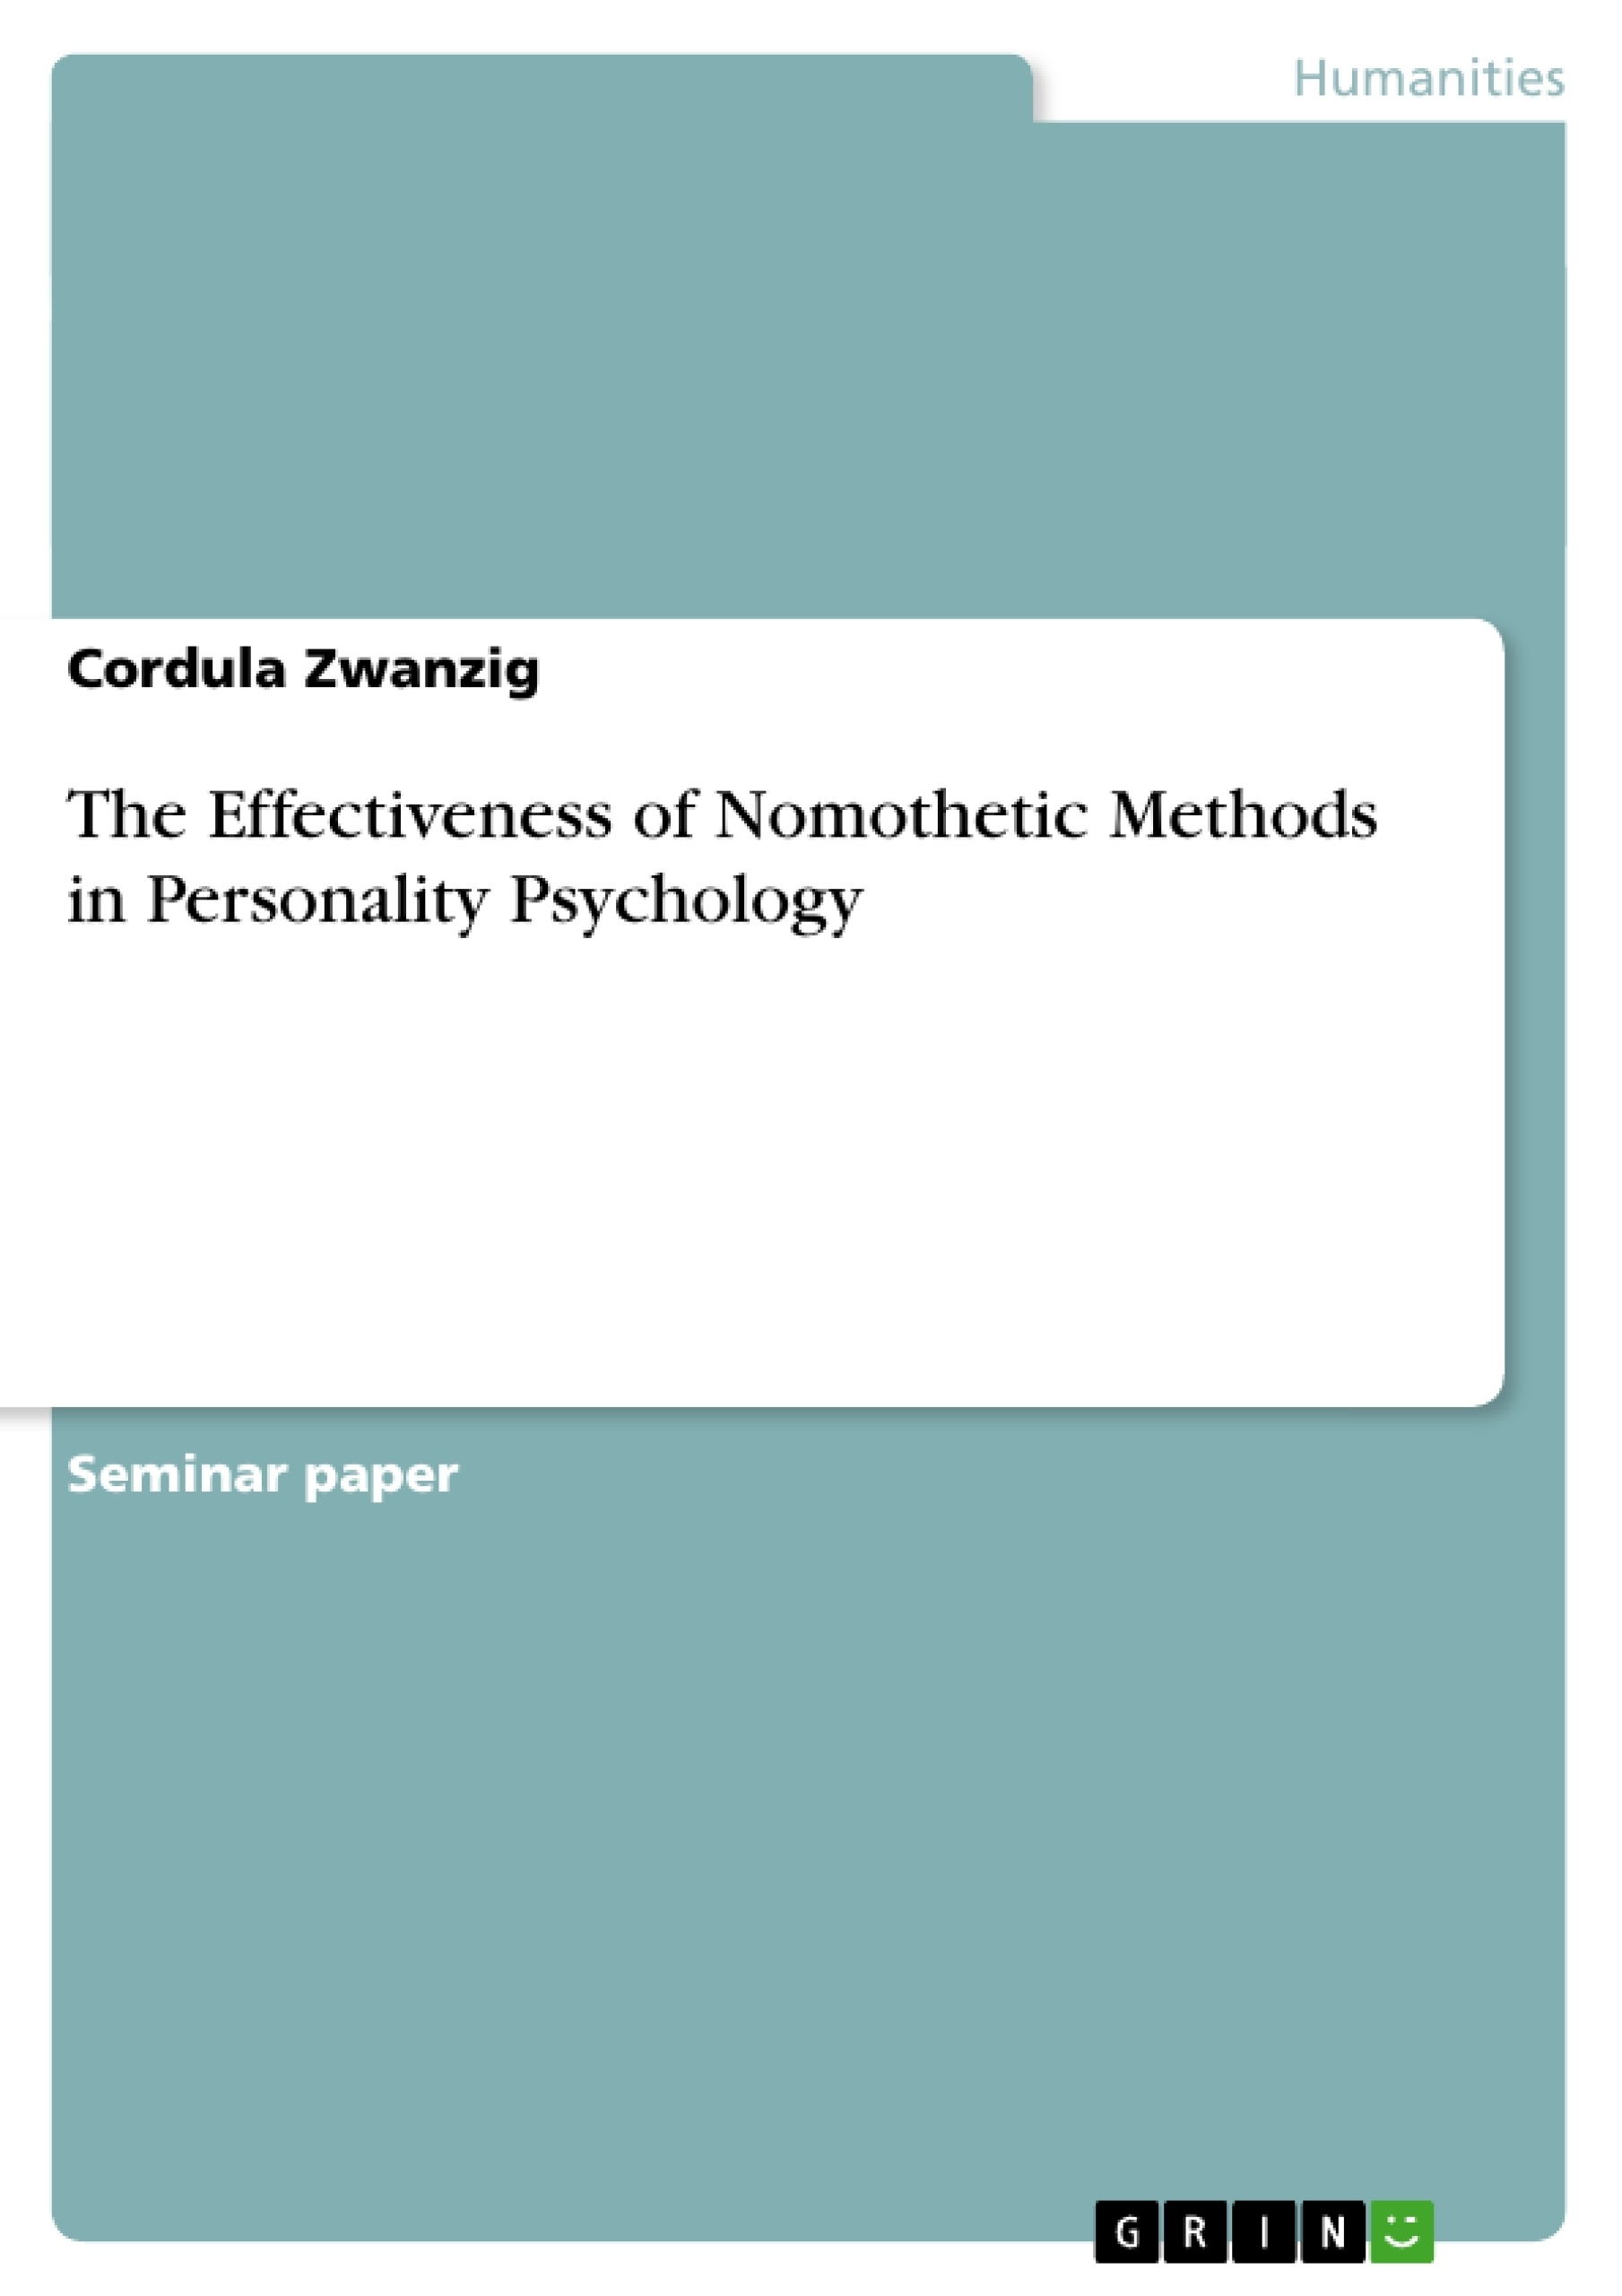 Title: The Effectiveness of Nomothetic Methods in Personality Psychology